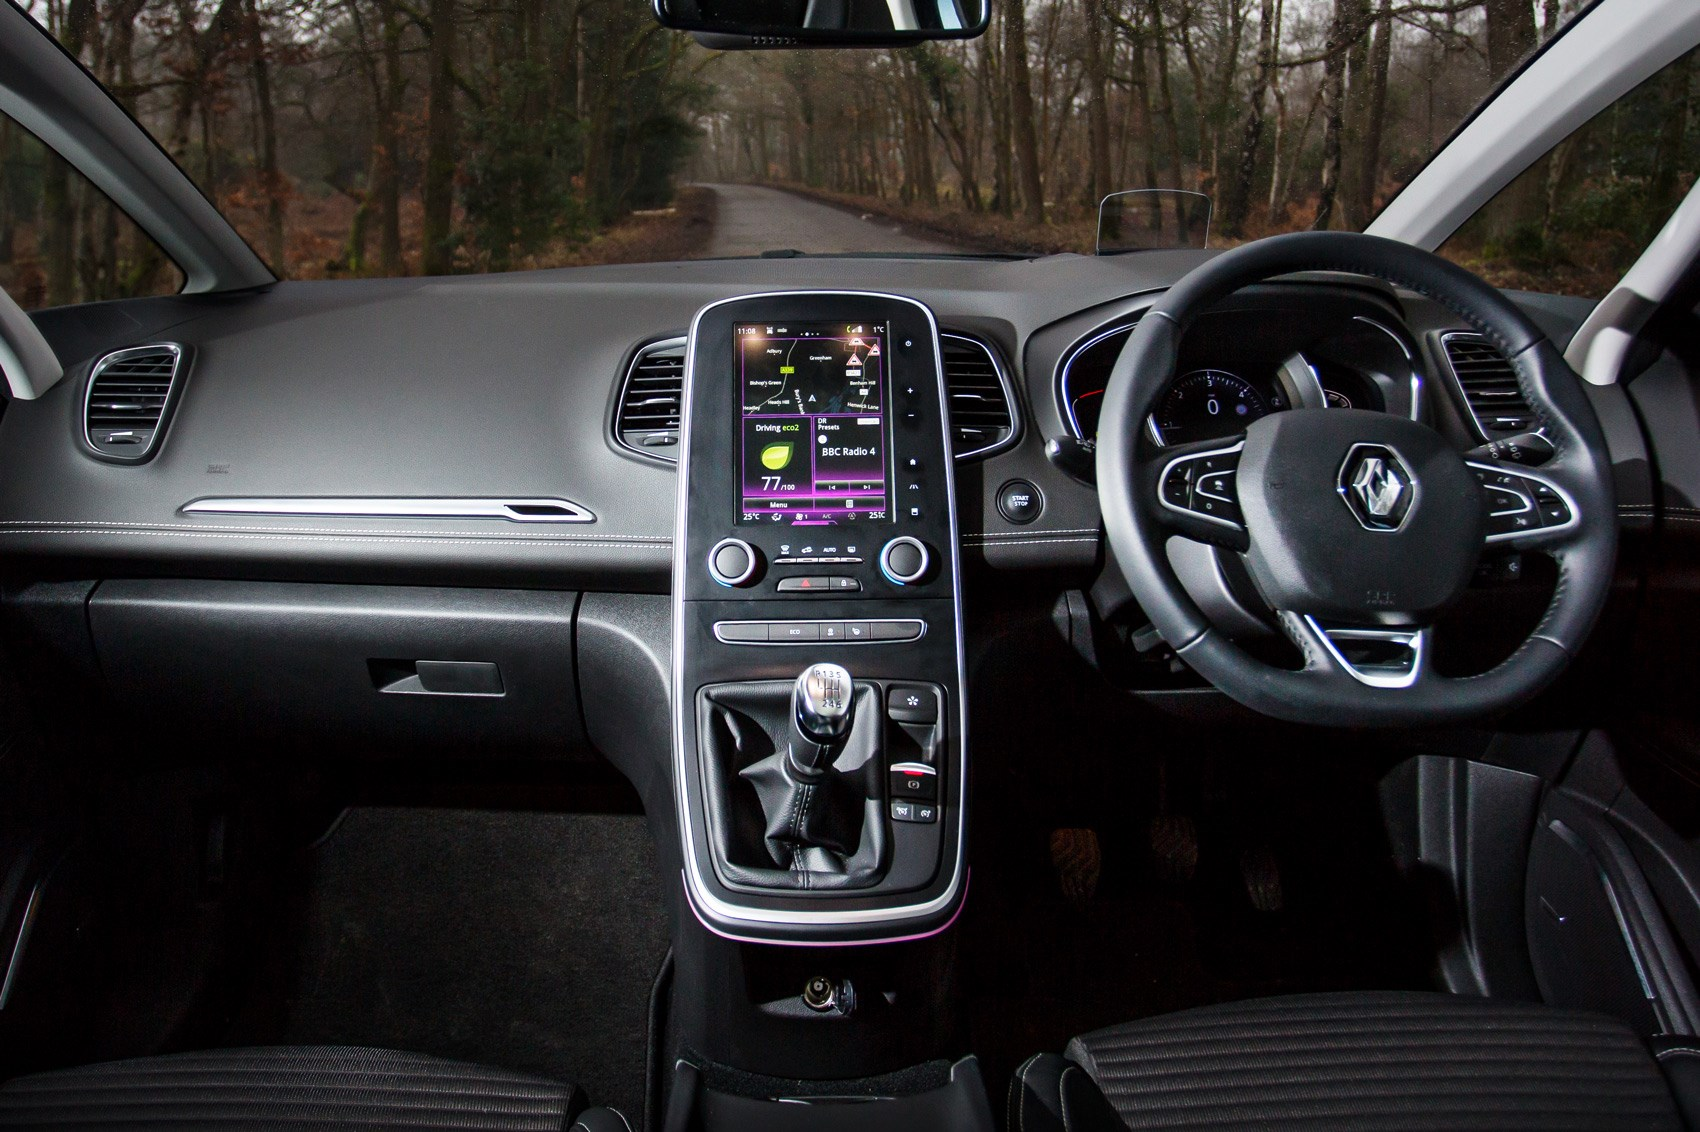 renault grand scenic mpv long term test 2018 review by car magazine. Black Bedroom Furniture Sets. Home Design Ideas